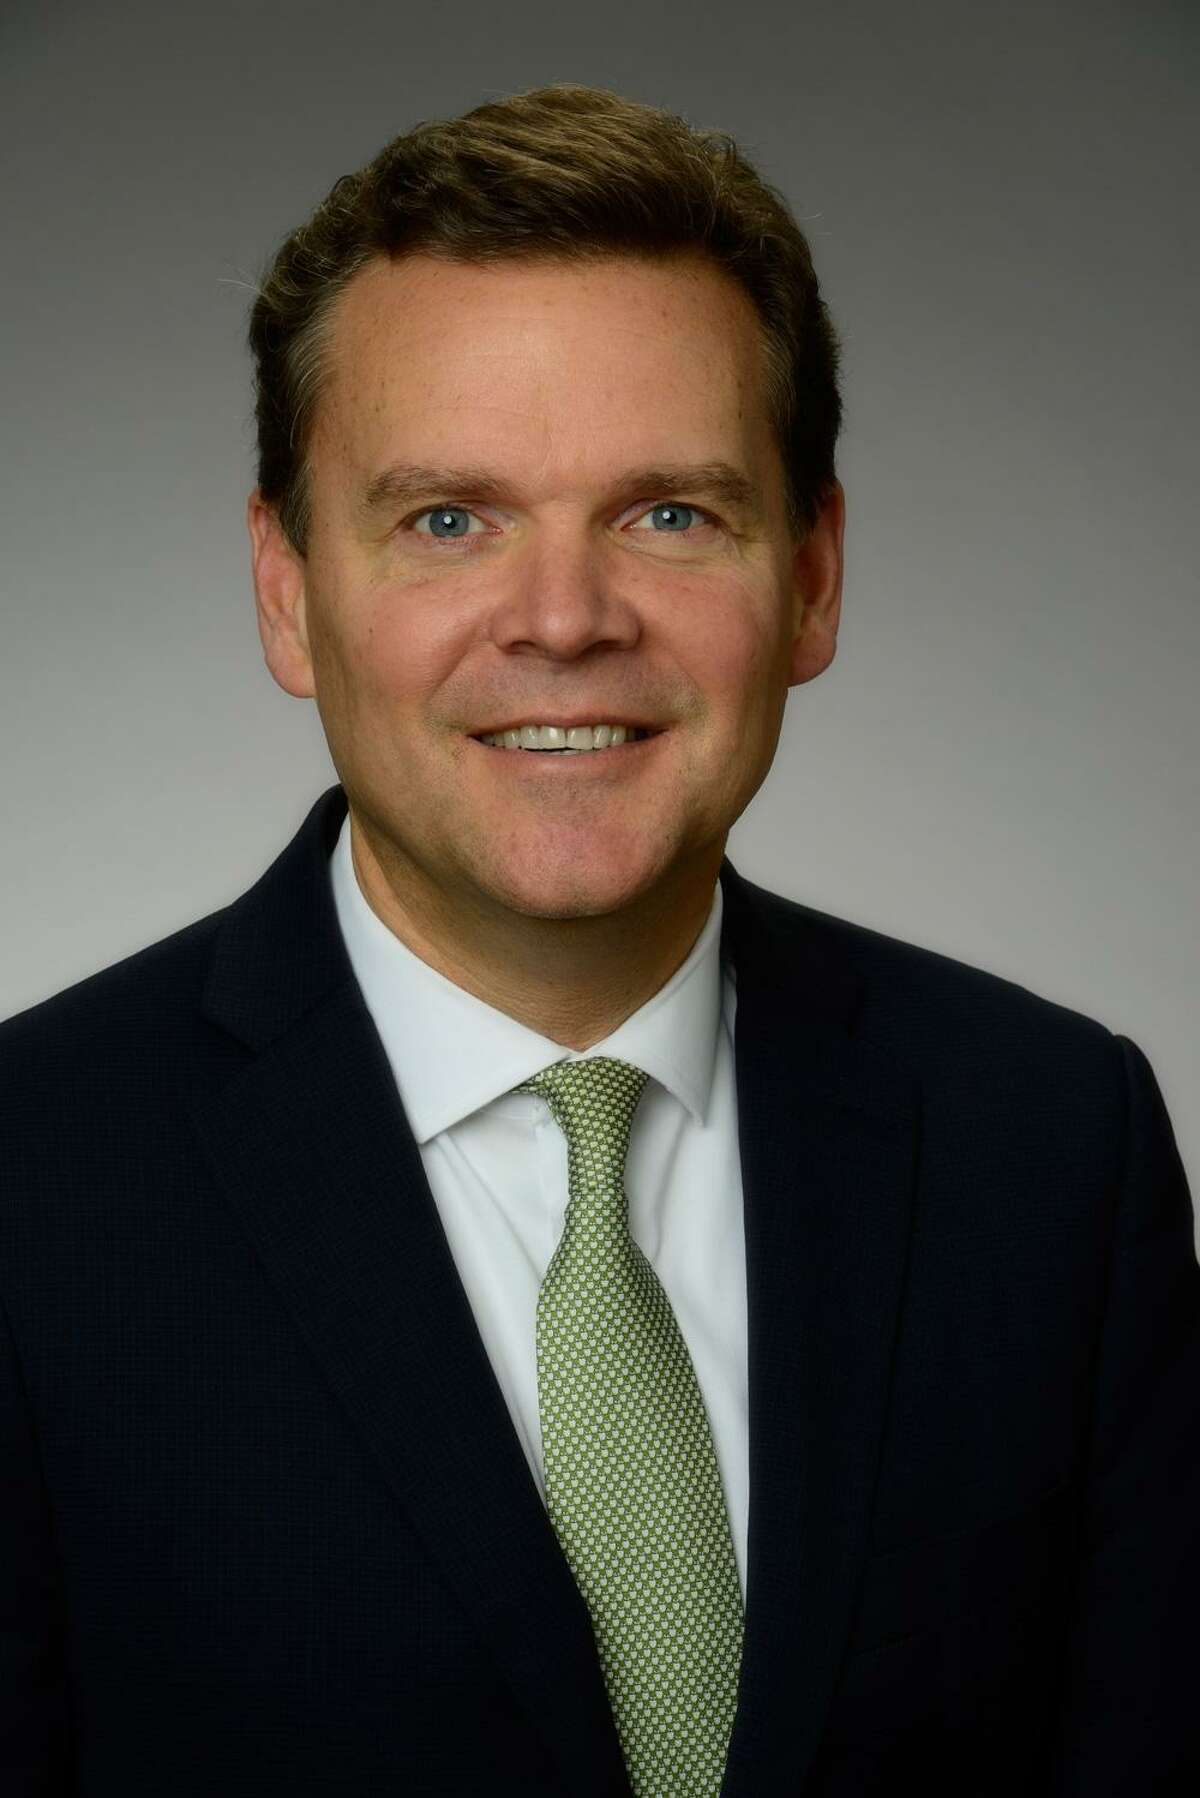 Peter Huntsman, chairman and CEO of the Huntsman Corporation, which has its global headquarters in The Woodlands. Huntsman said the company will either donate the hand sanitizer or provide it at an extremely minimal cost that only covers the production costs the company incurs.